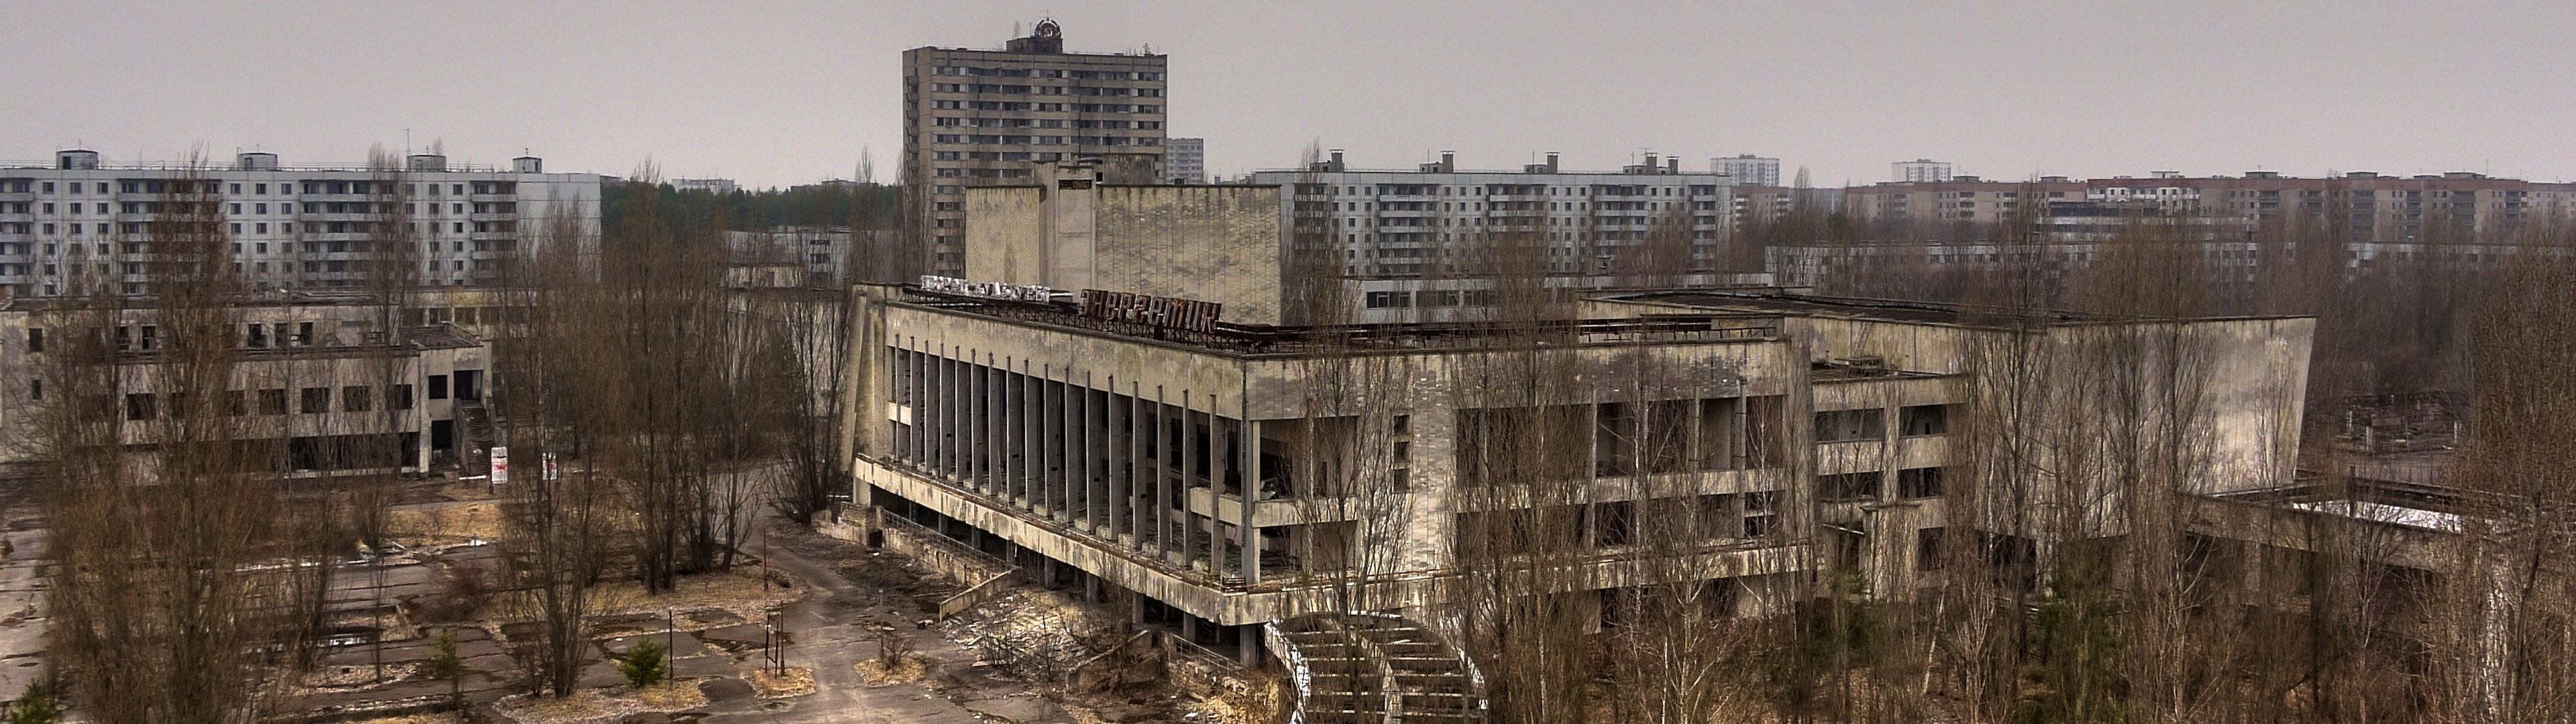 cityscapes buildings Pripyat Chernobyl HD Wallpaper